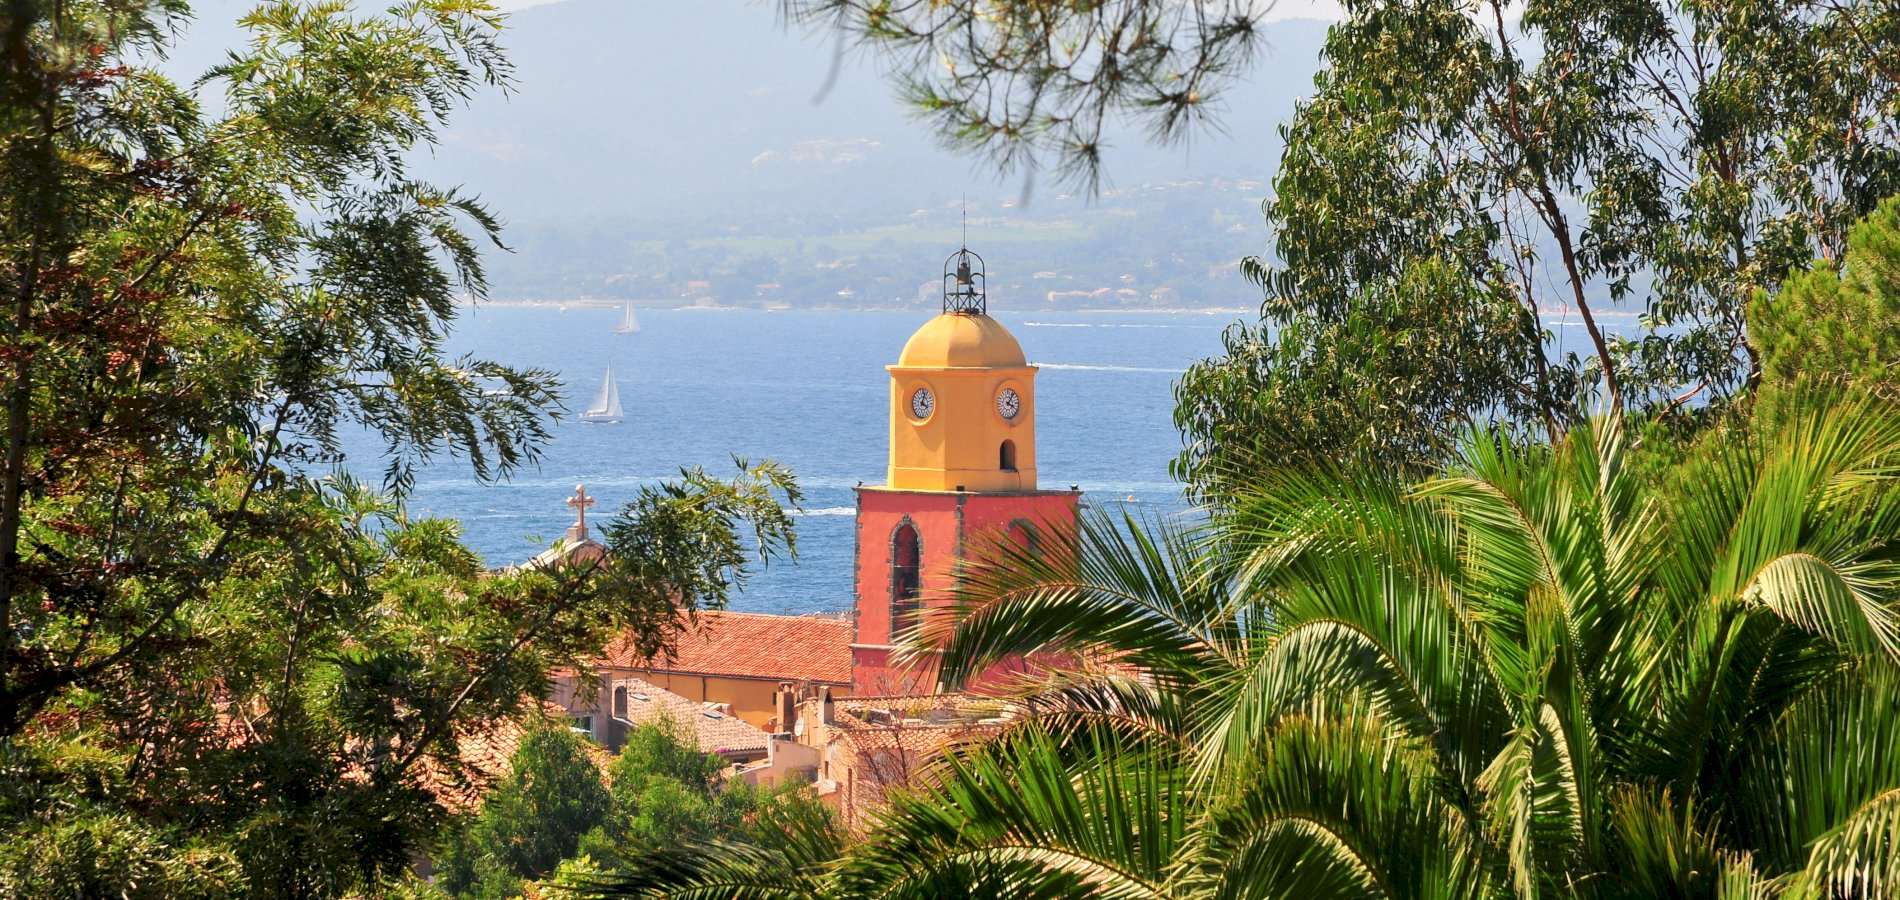 Ophorus Tours - Port Grimaud & Saint Tropez Villages Shared Day Trip from Nice